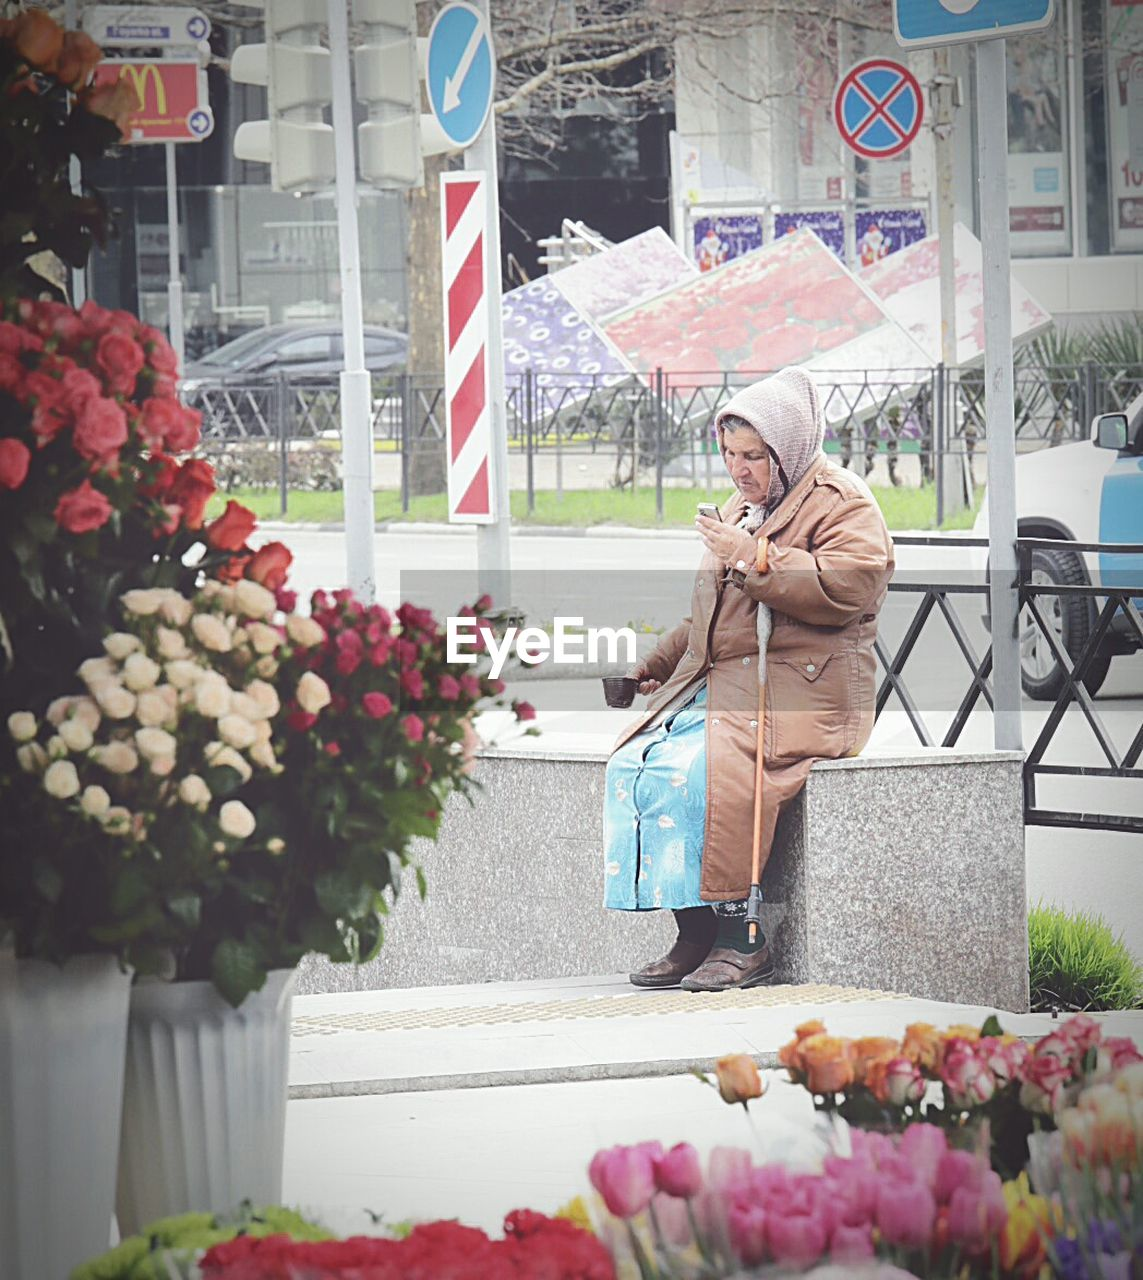 flower, one person, full length, mid adult, retail, day, real people, bouquet, outdoors, flower shop, gift, store, standing, warm clothing, building exterior, women, flower market, market, lifestyles, beautiful woman, freshness, one woman only, only women, tree, adult, florist, people, adults only